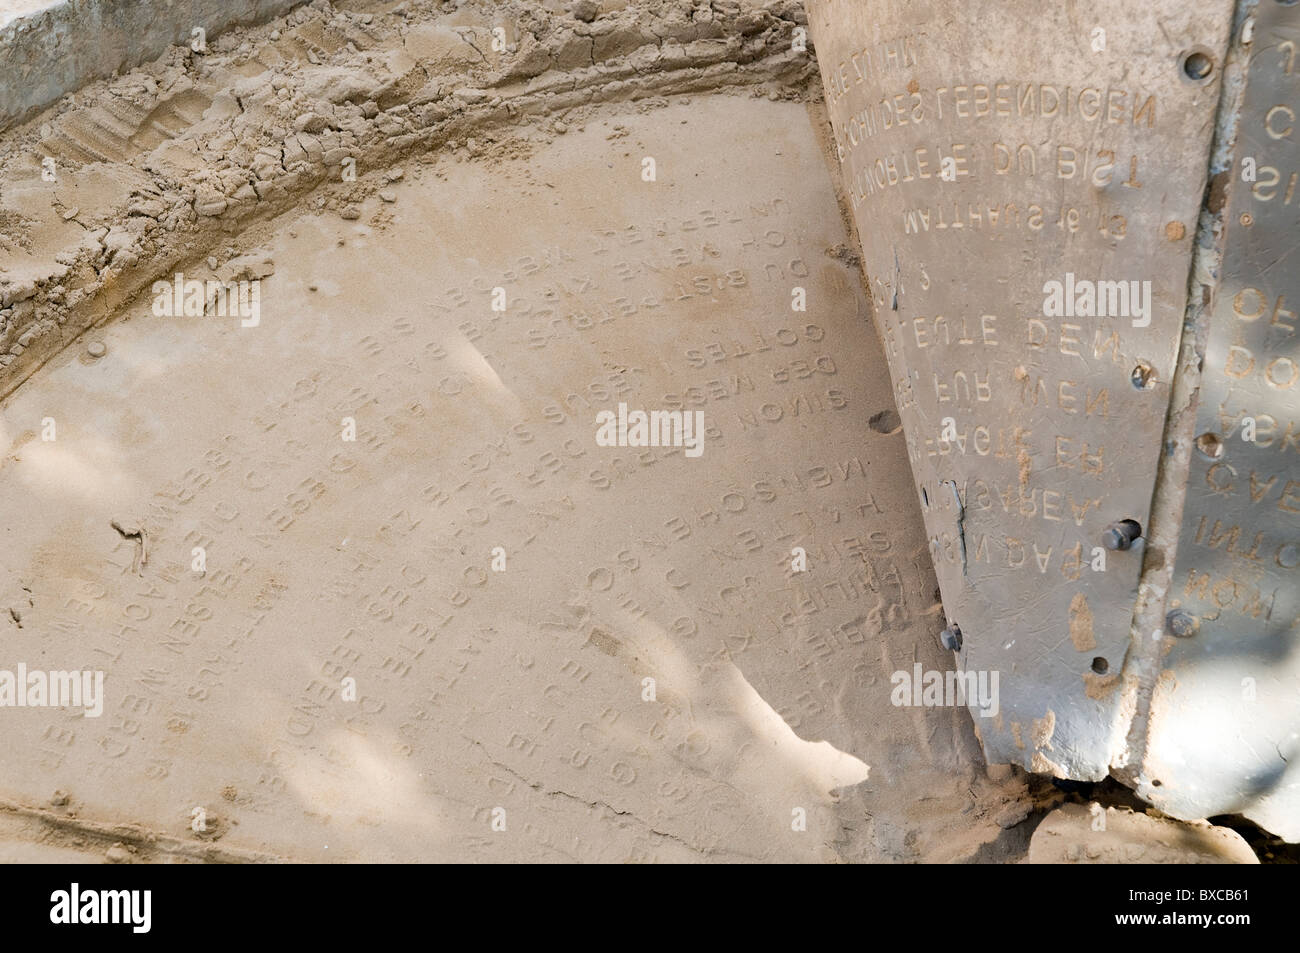 Sand Verses. Versus from the scripture embossed in sand - Stock Image